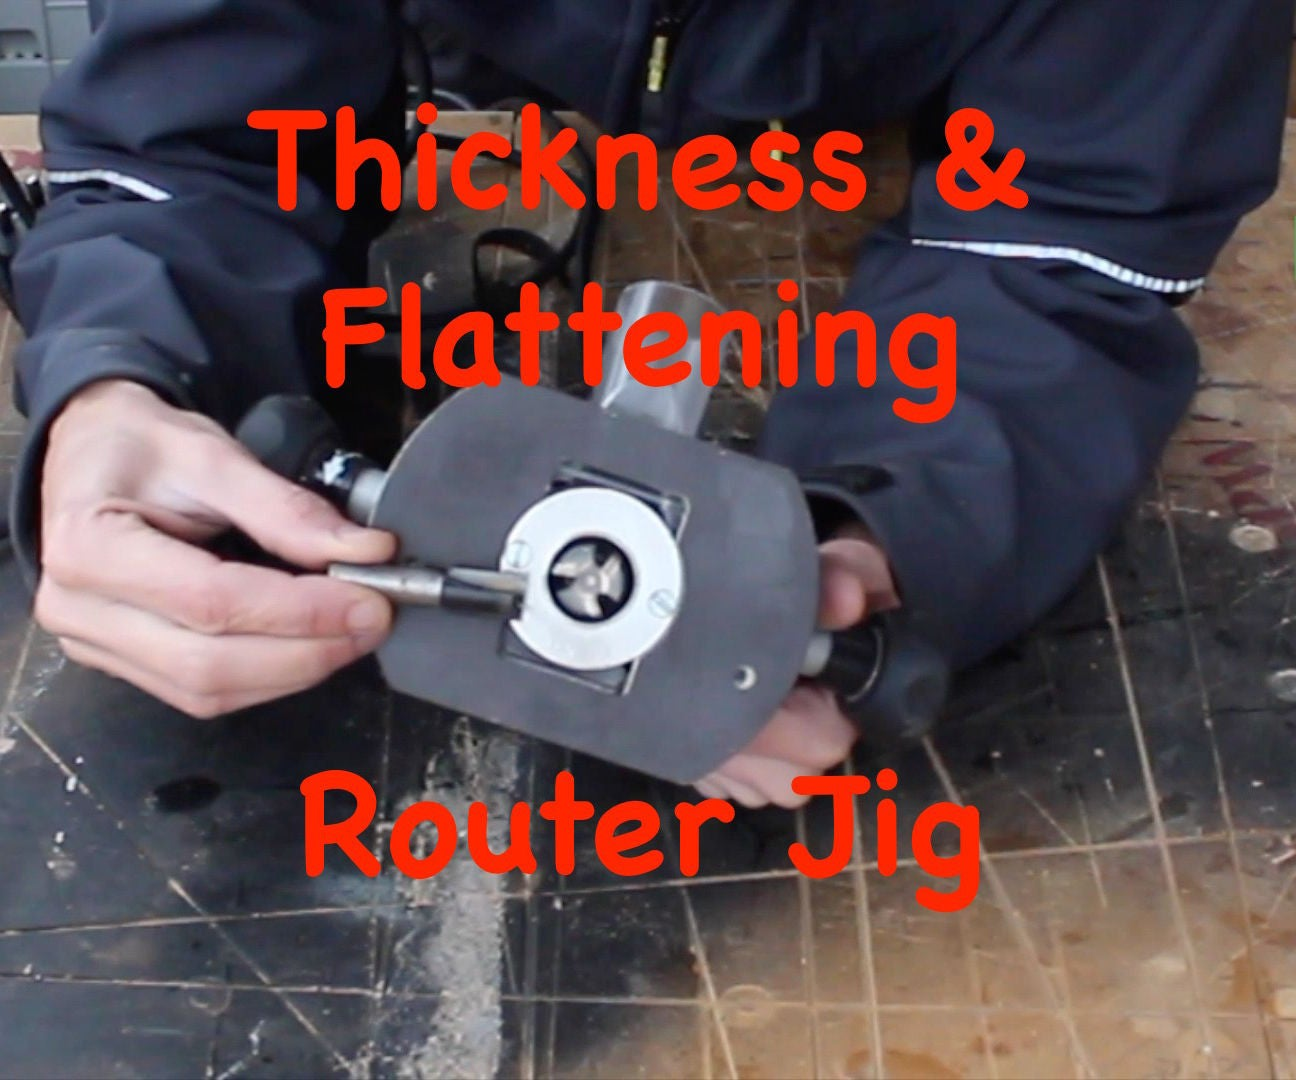 How to Use a Router Planer Surfacing Jig to Thickness Flatten Rough Sawn Timber or Thick Lumber